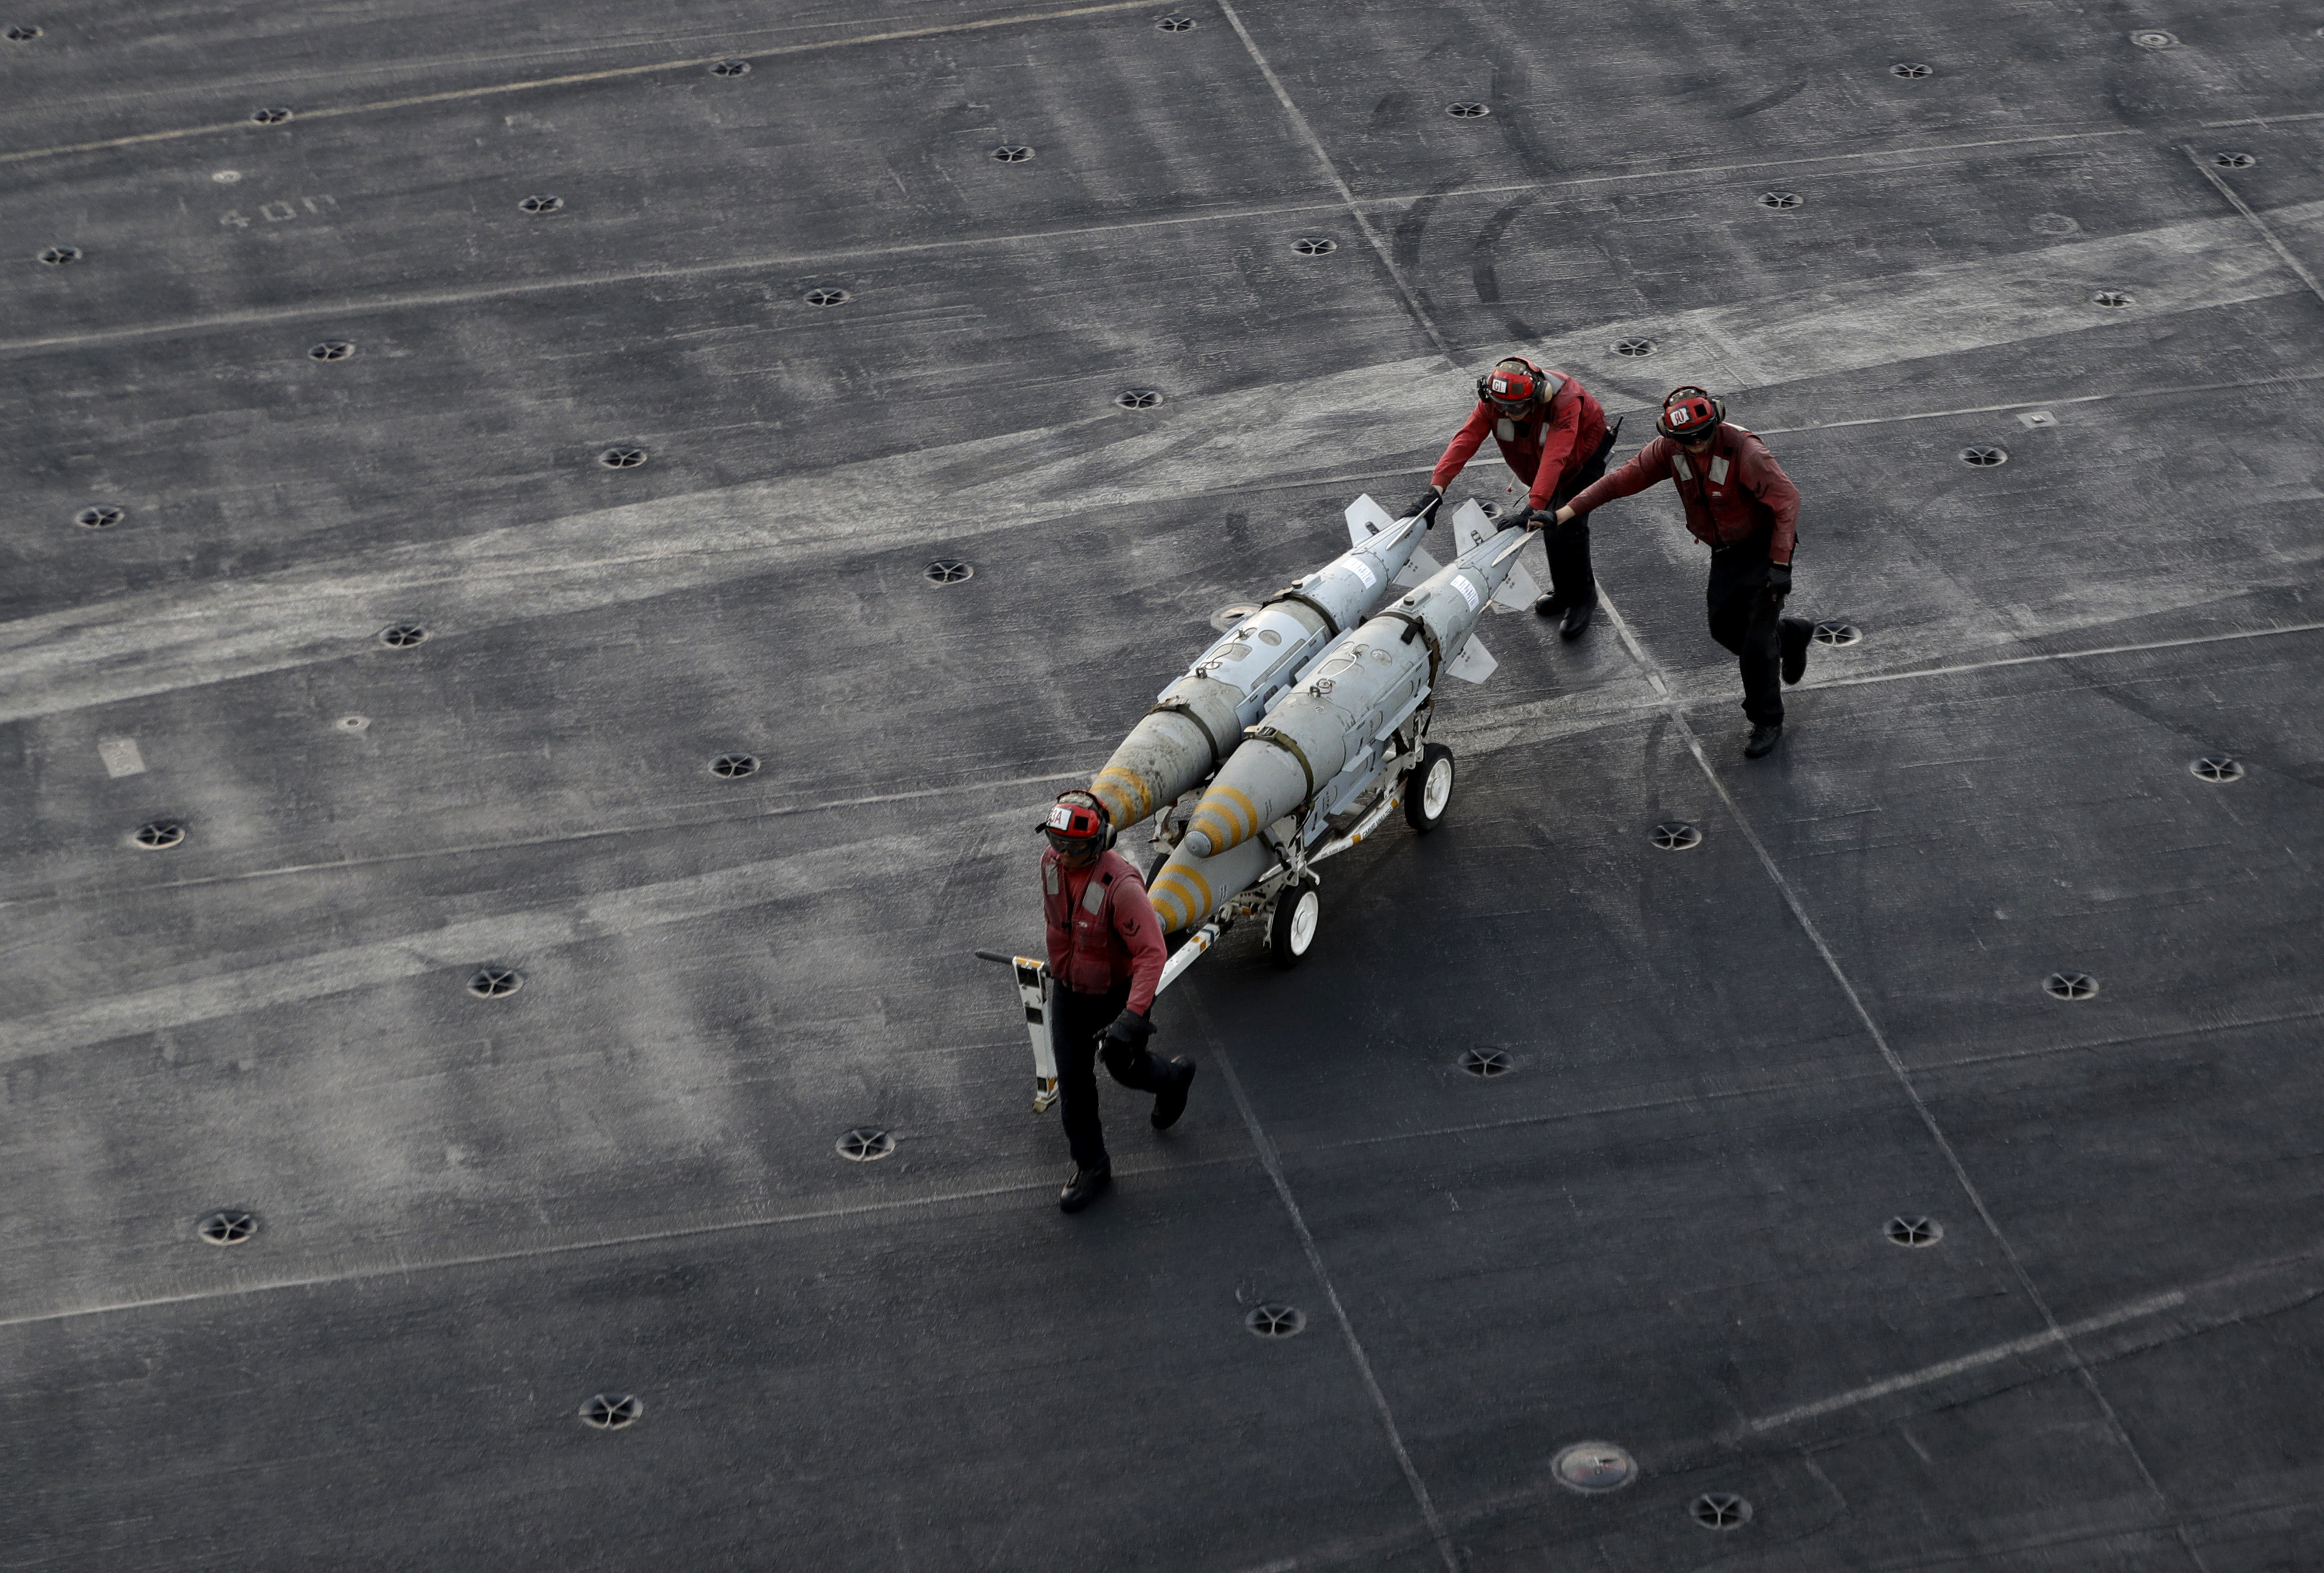 FILE - U.S. Navy sailors push ammunition across the deck of the U.S.S. Dwight D. Eisenhower aircraft carrier, Nov. 21, 2016, as the ship carries out military operations against IS extremists in Syria and Iraq.